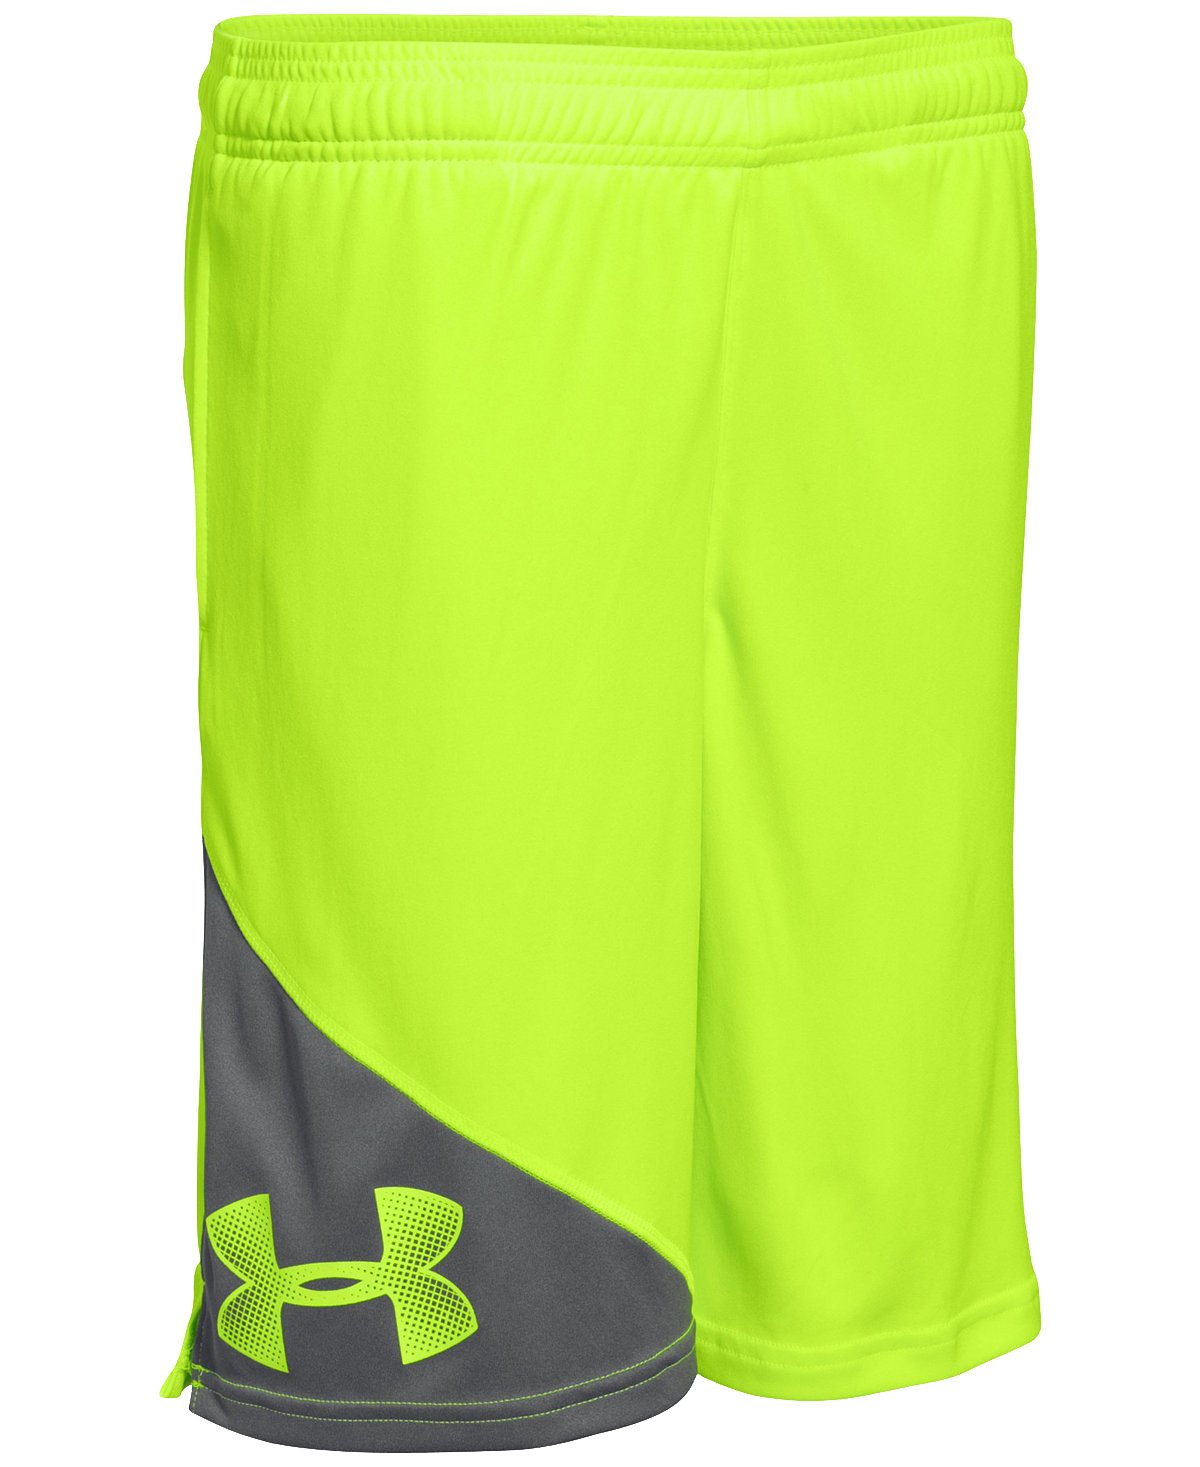 Under Armour UA Tech Prototype YSM FUEL GREEN